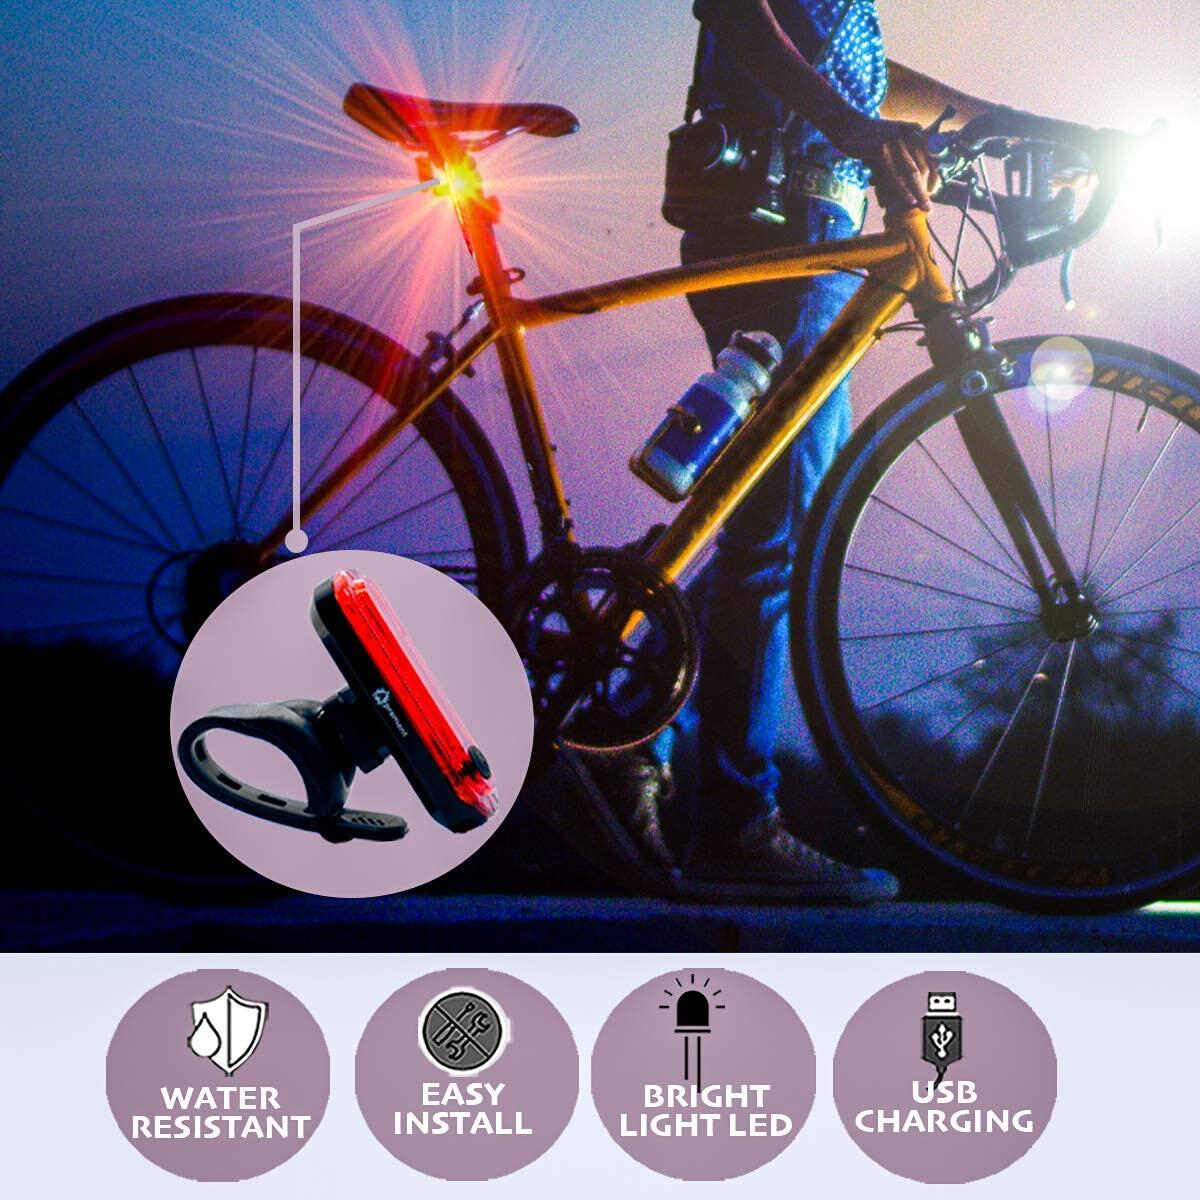 APREMONT Bike Headlight and Rear Bike Light Set - USB Led Rechargeable Bike Lights Front and Back - Super Bright Bike Light Set - Waterproof - Flashing - Suit Road Cycling and etc